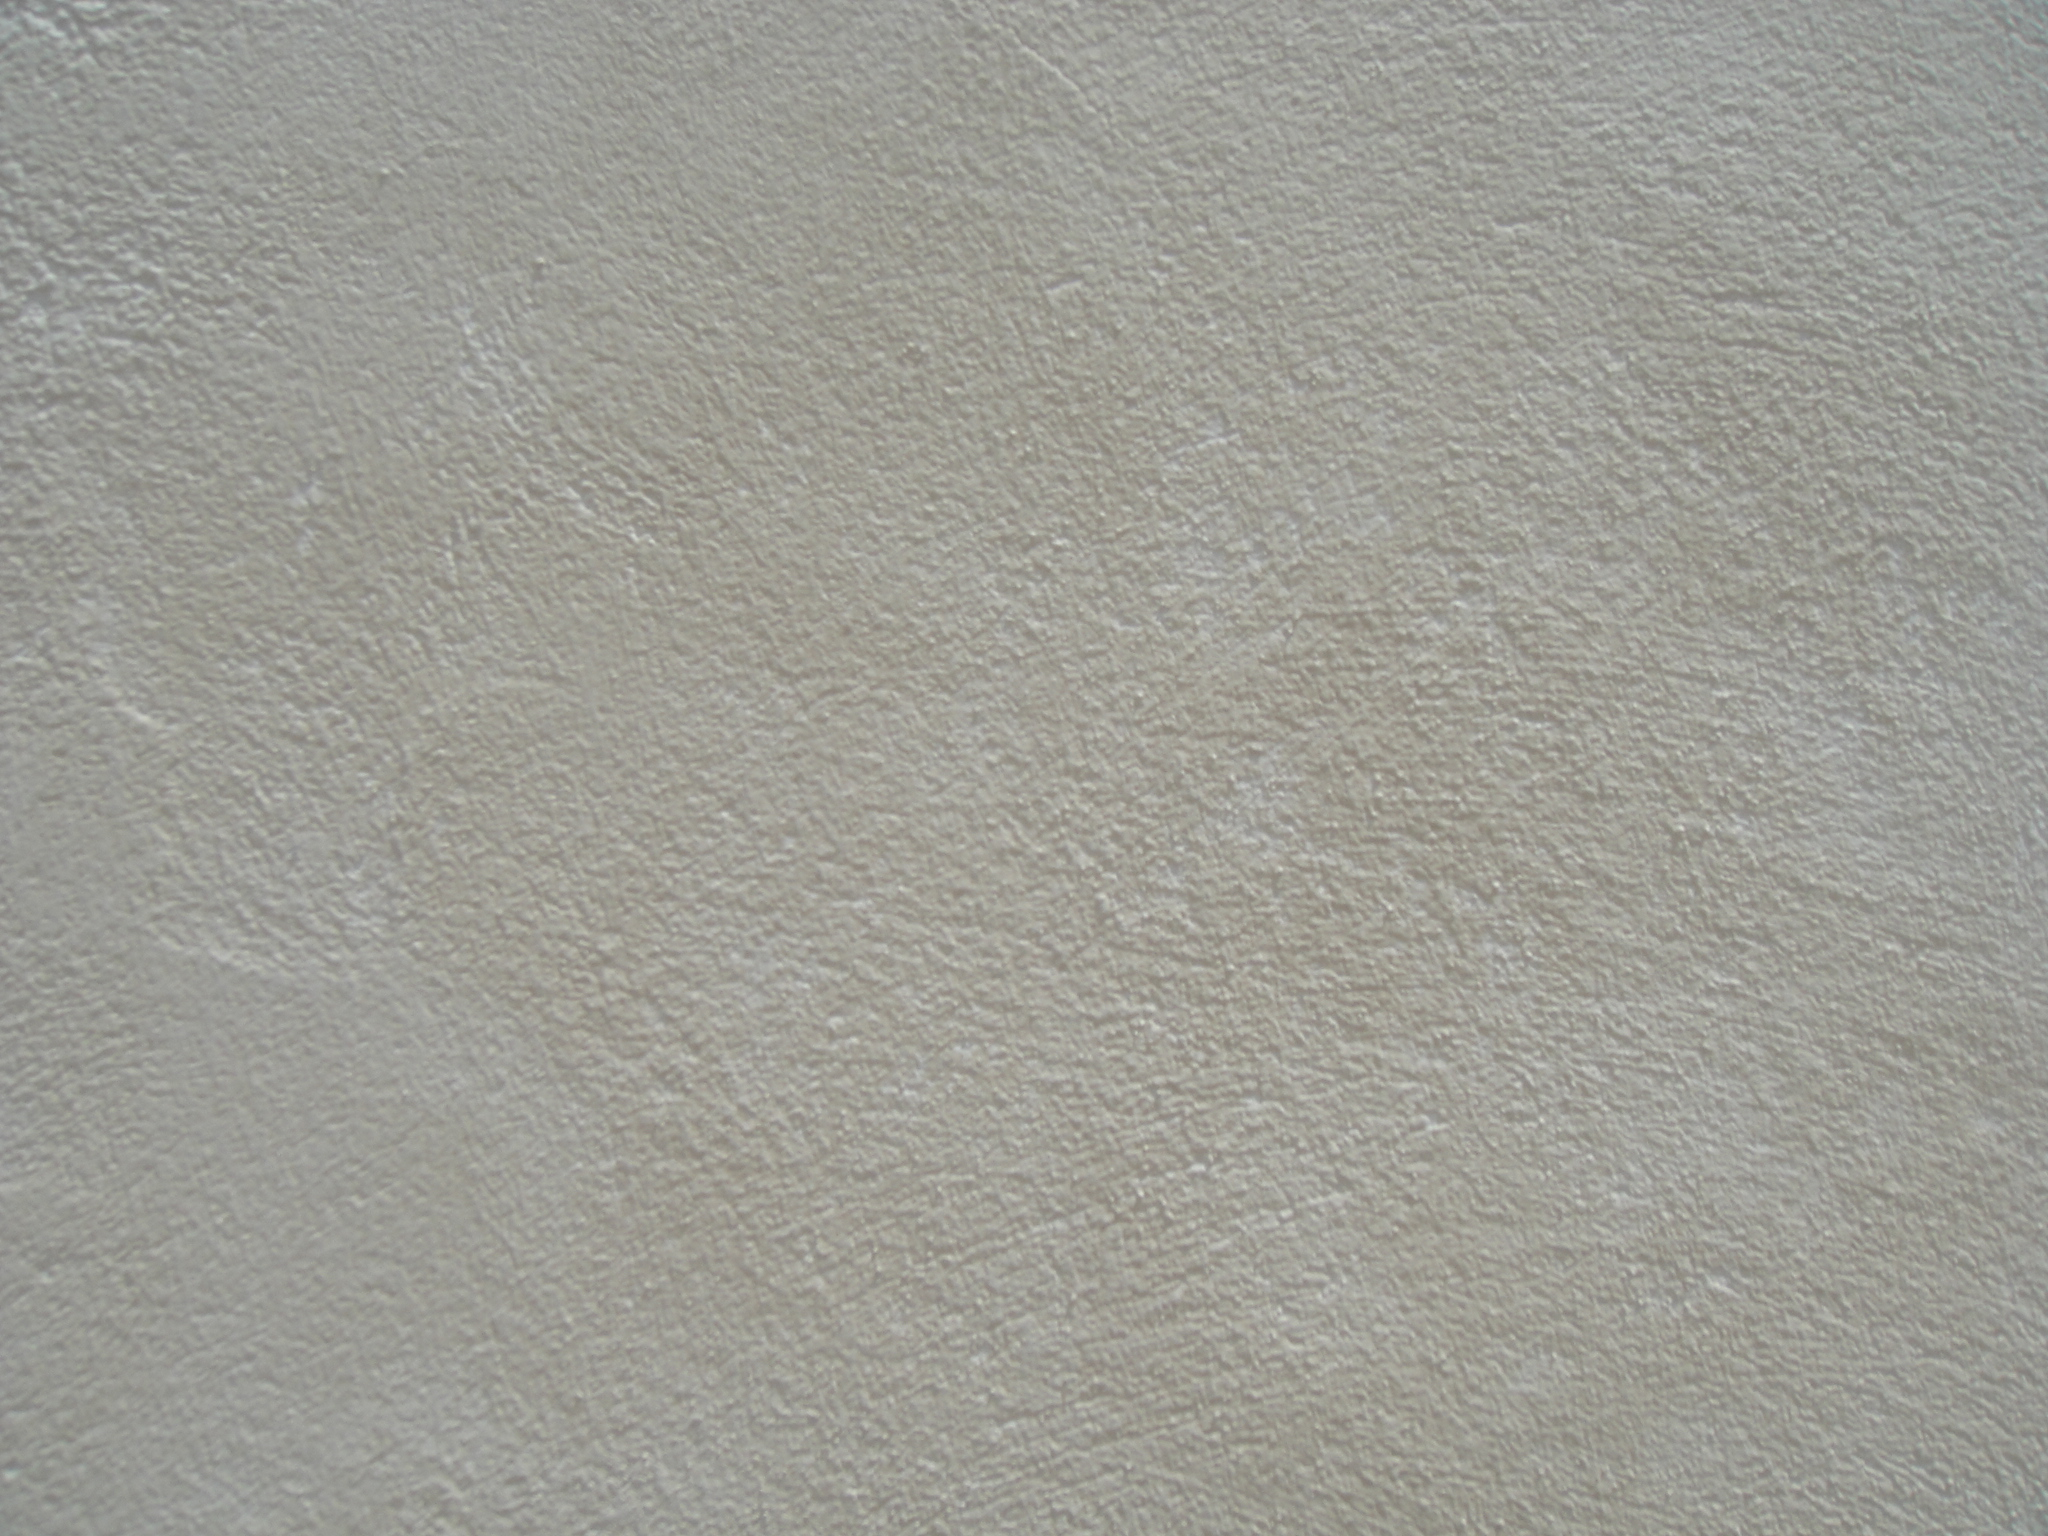 White Wall Texture : shiny-white-wall-texture - MGT Design